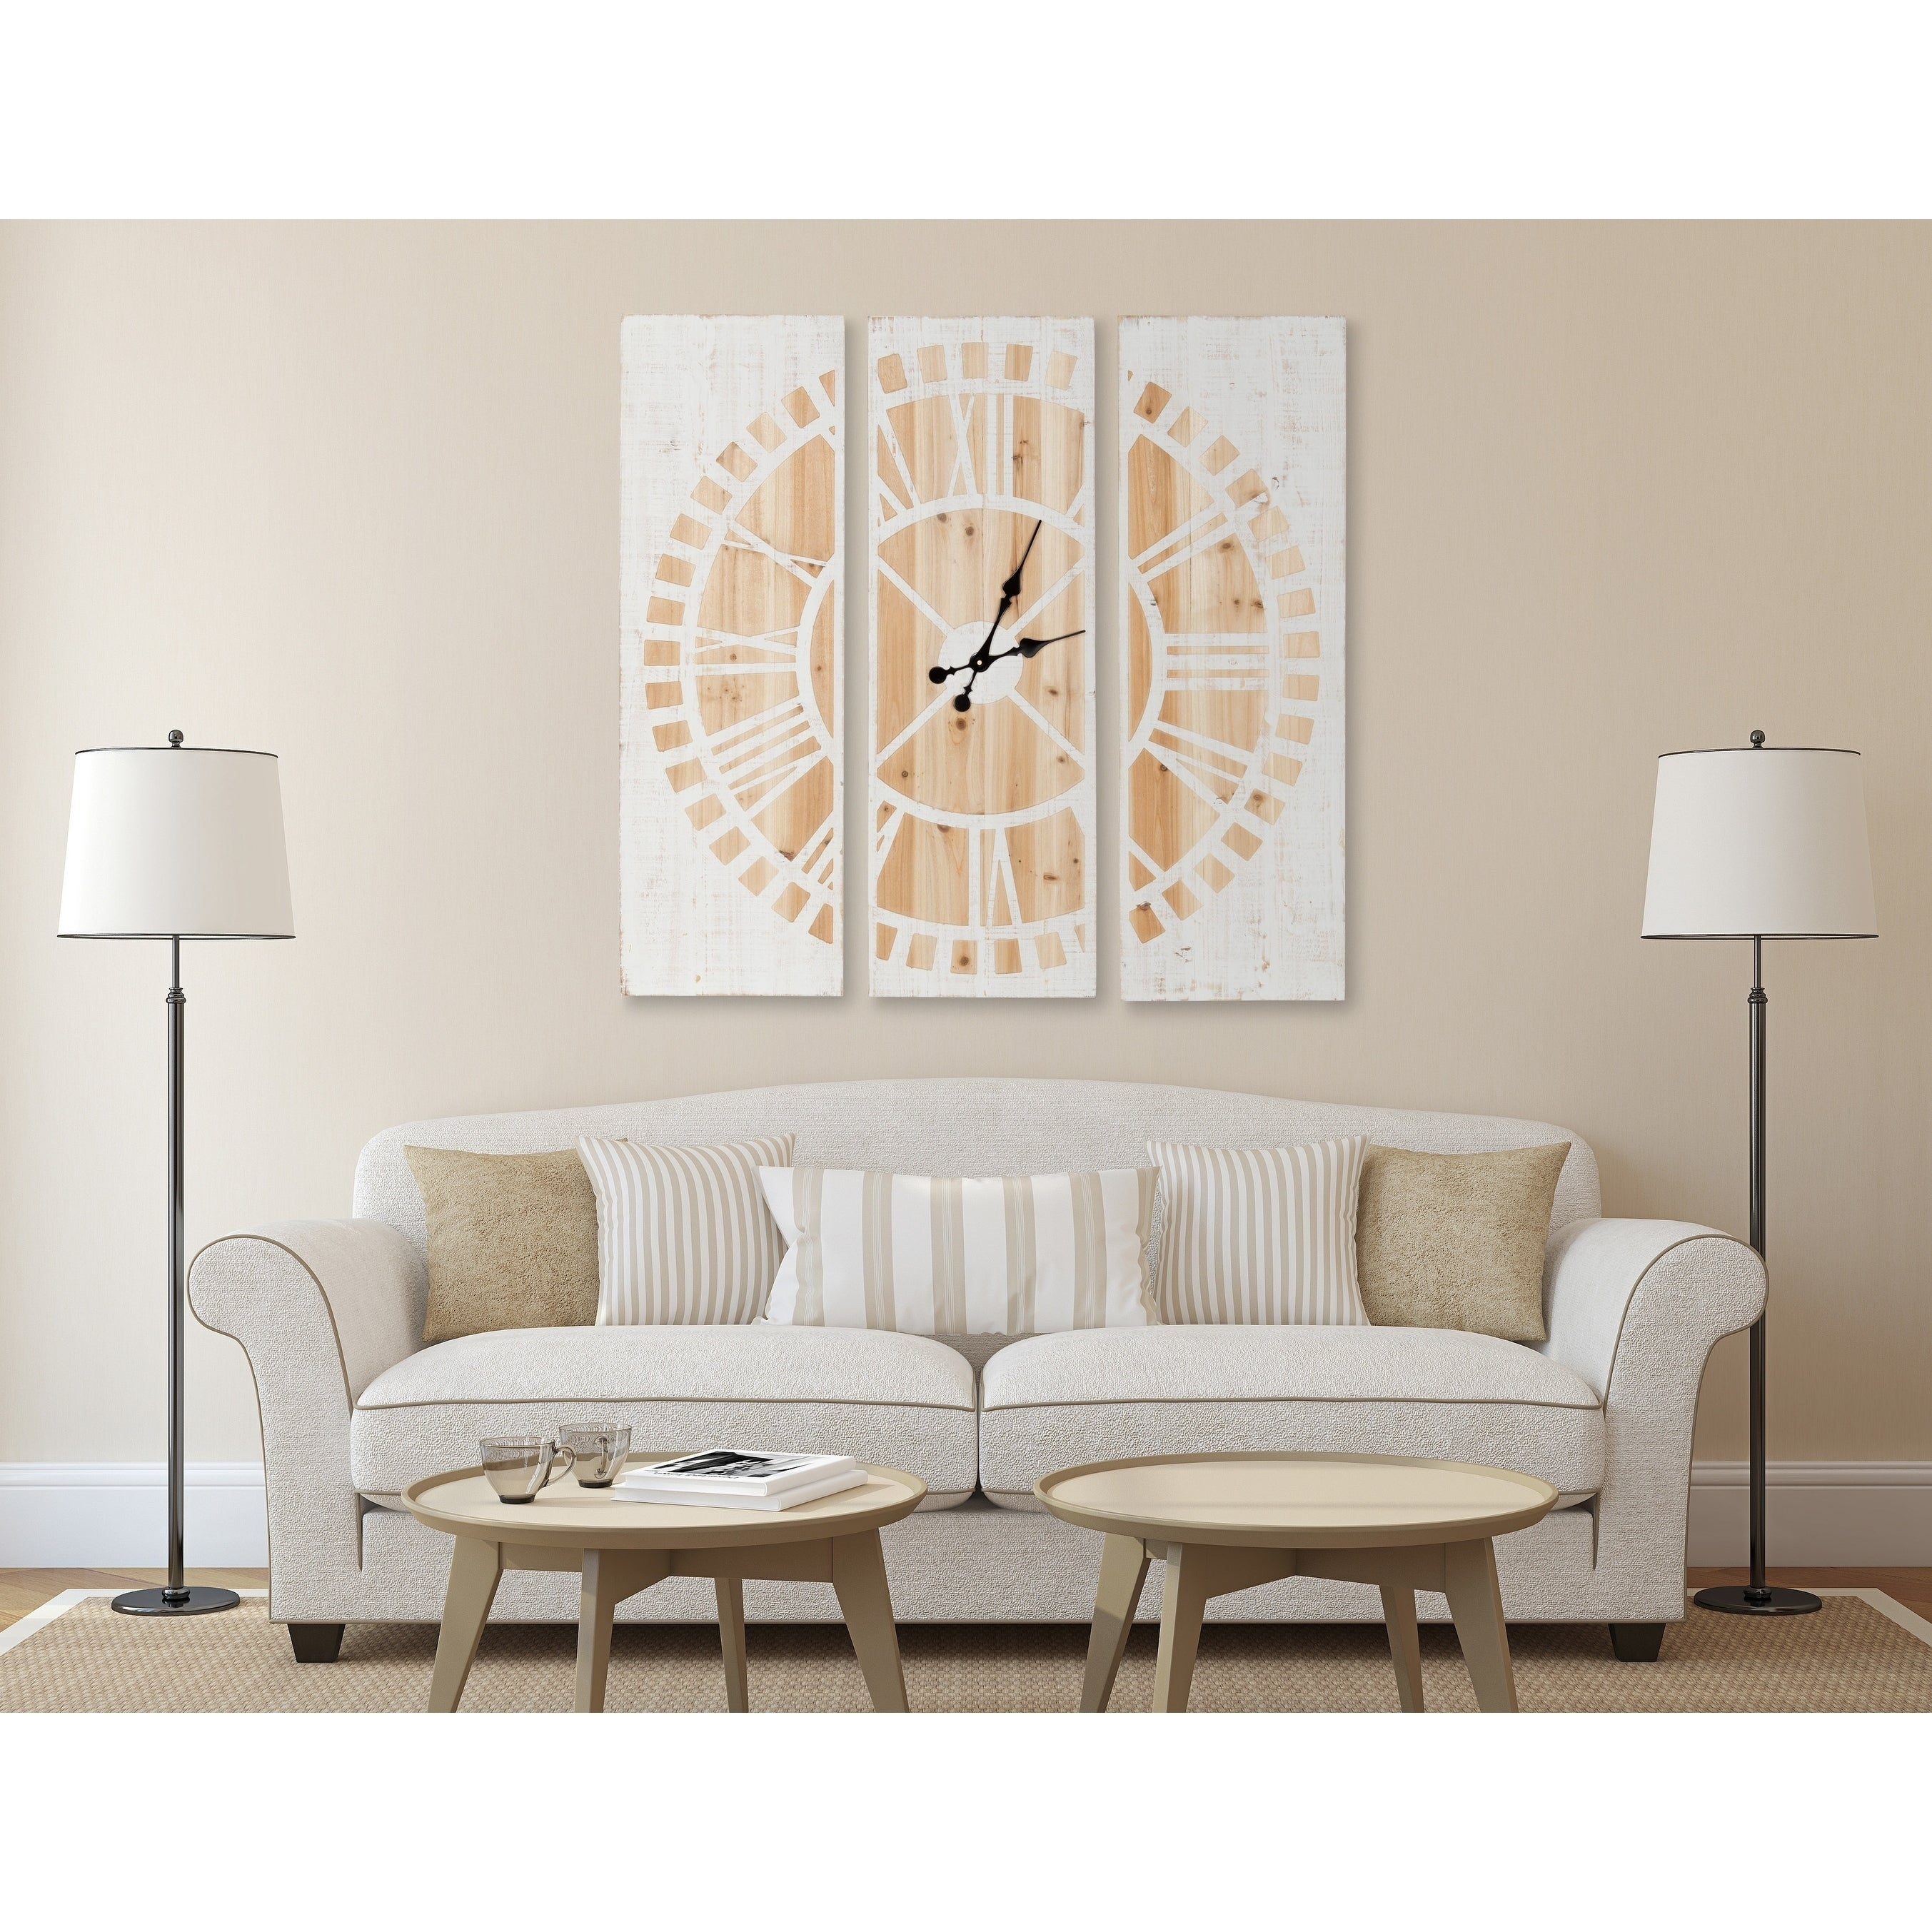 Shop Kate and Laurel Piedmont 3 Panel Wood Wall Clock, White and ...